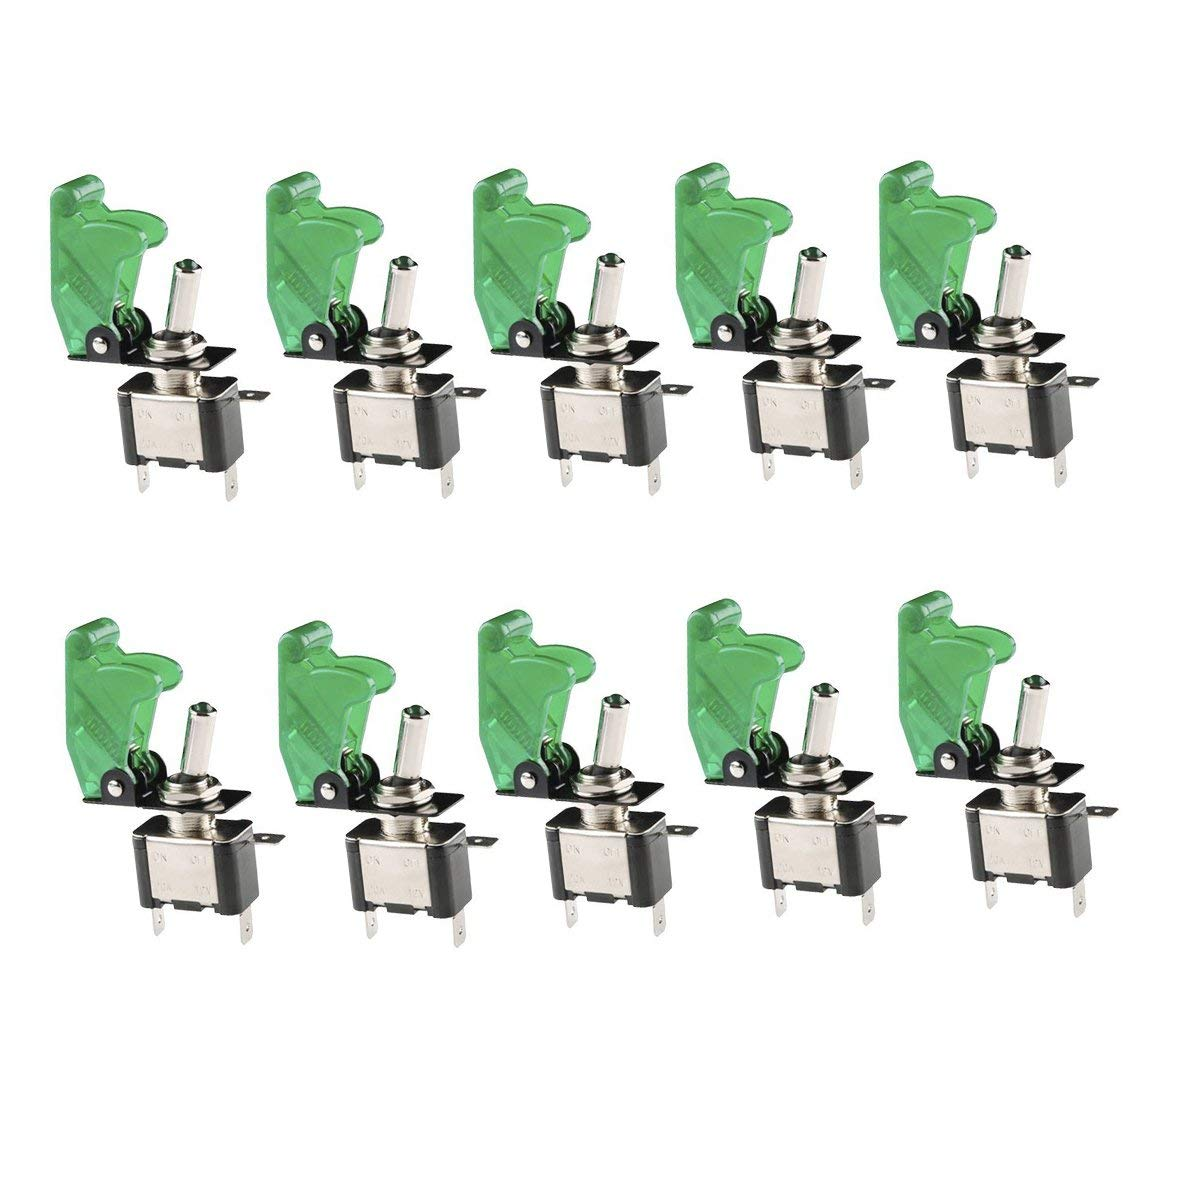 Cheap 12v Toggle Switch Led Find Deals On Switches Illuminated Tip Get Quotations Besttong 10pcs Spst Lighted Rocker Marine Off